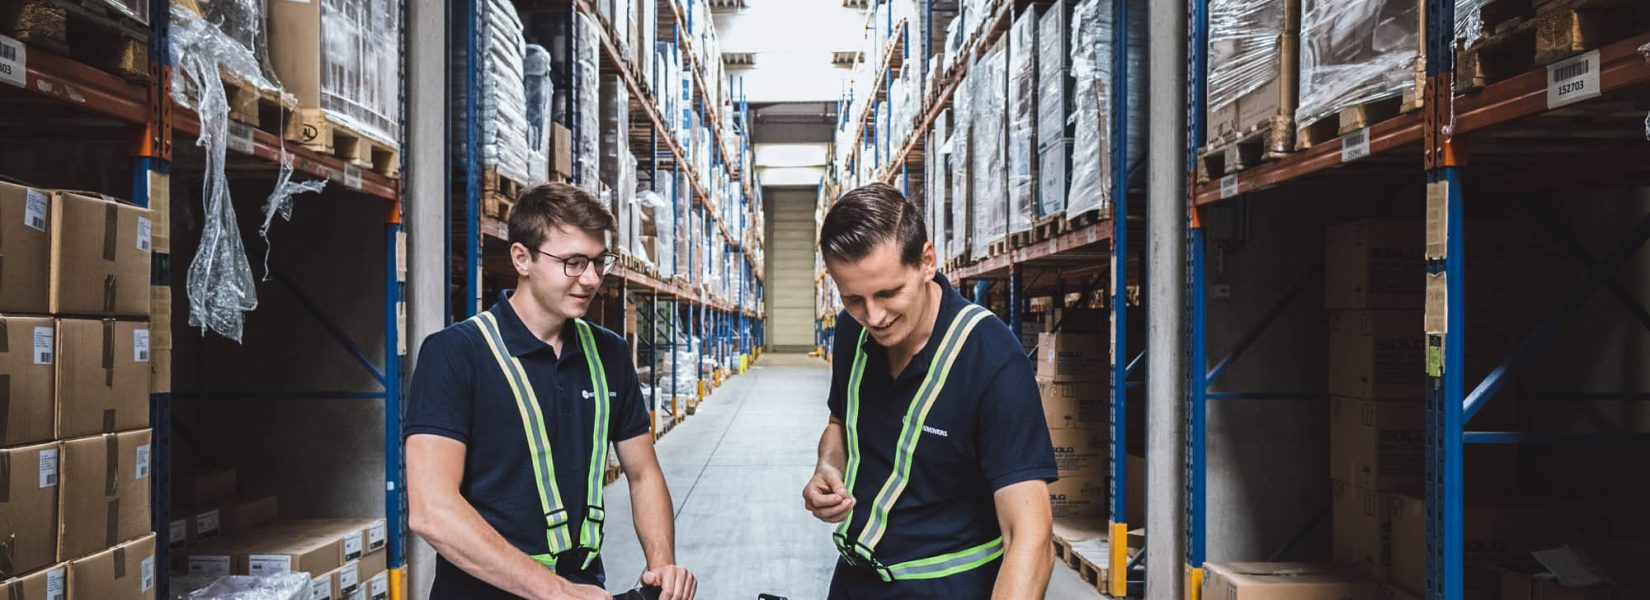 MotionMiners im Logistik Lager